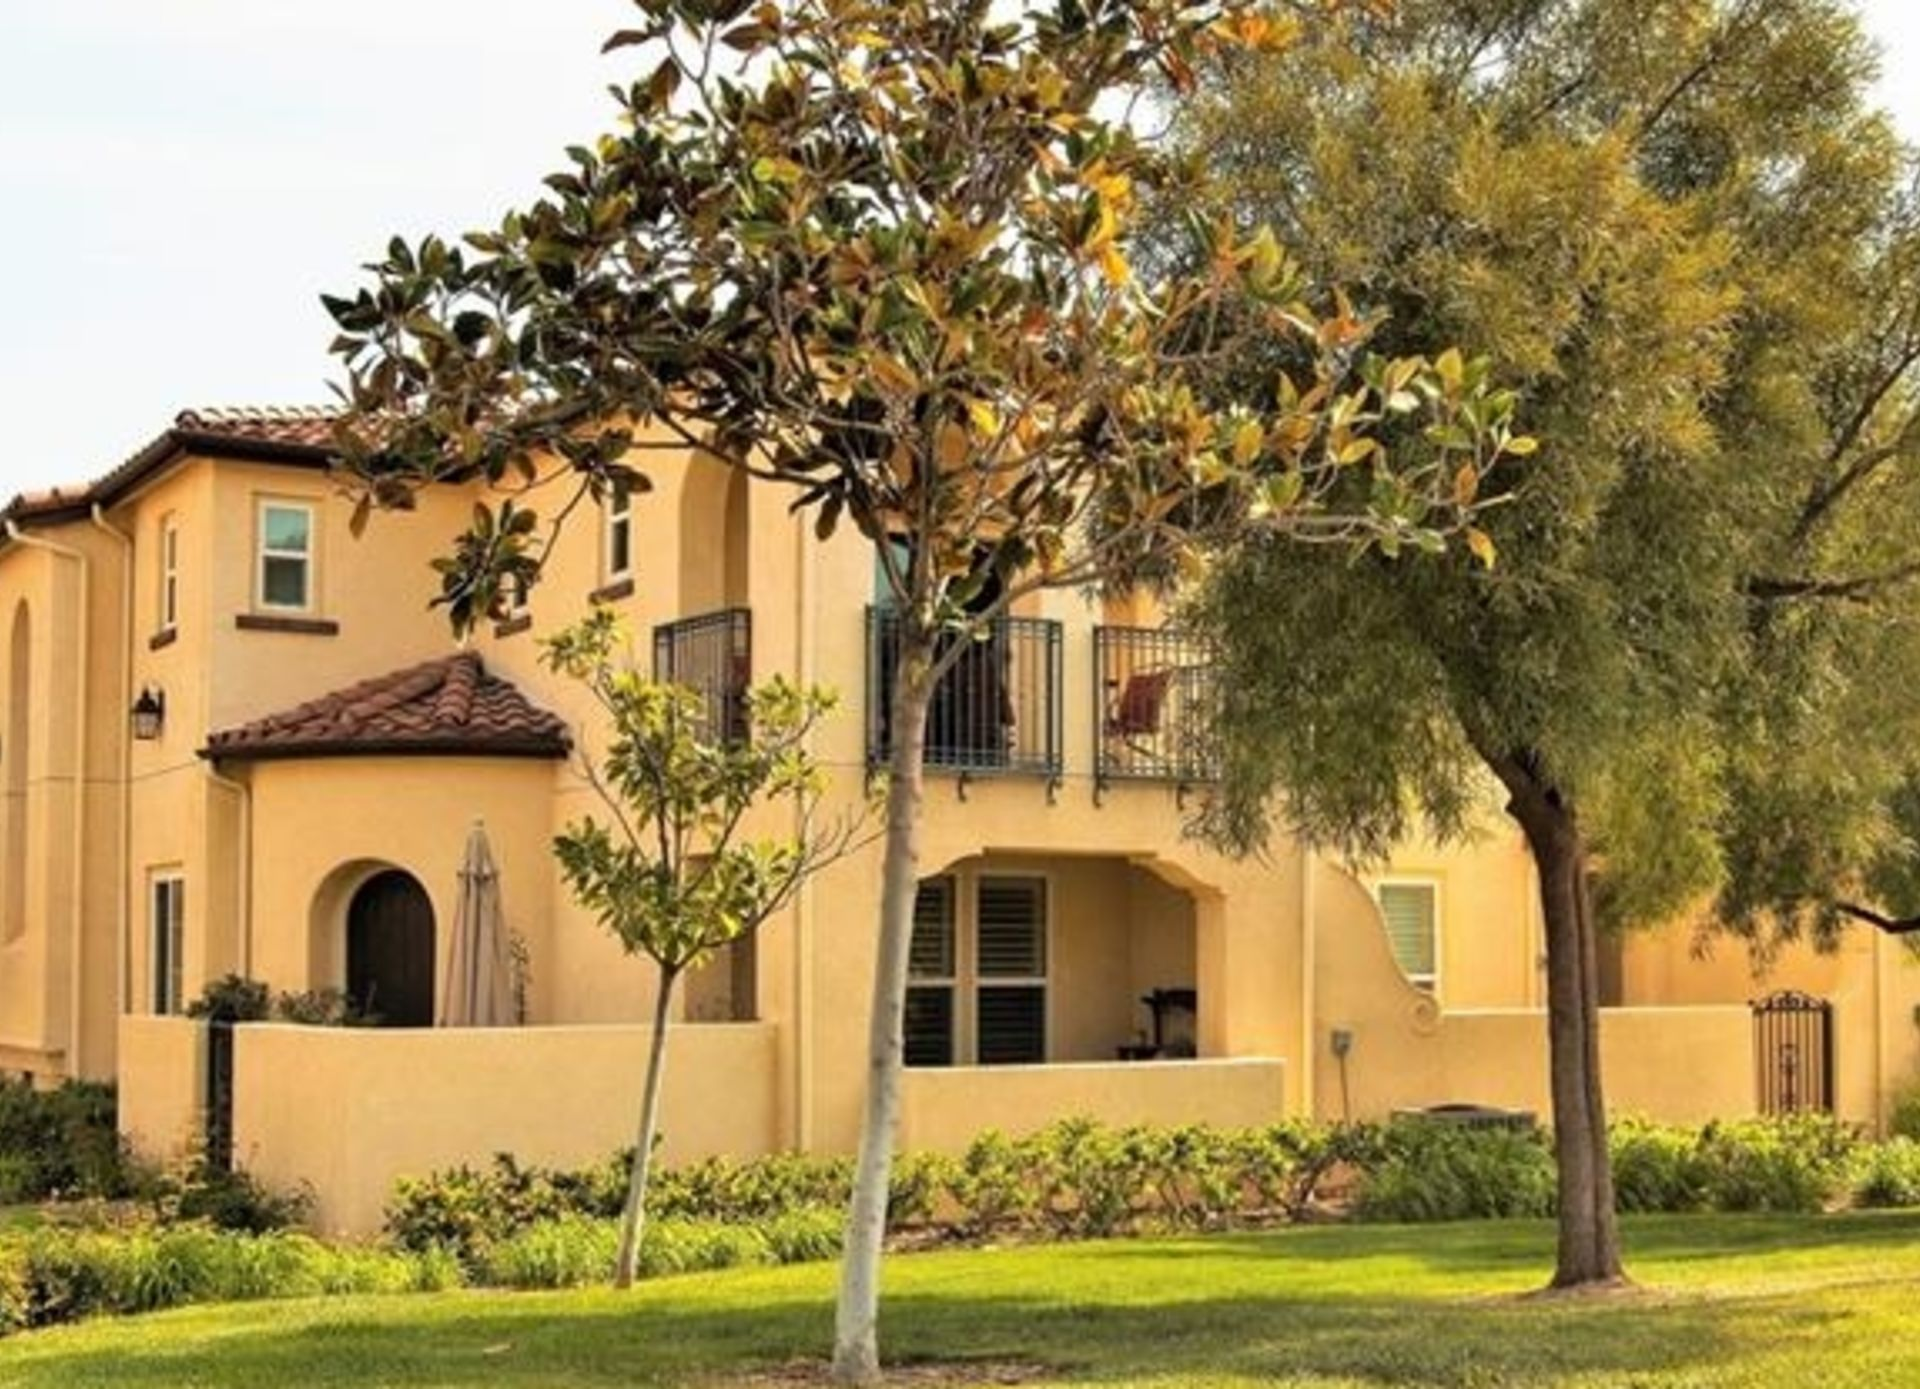 Starter Homes in Santa Clarita and the SFV: By The Numbers